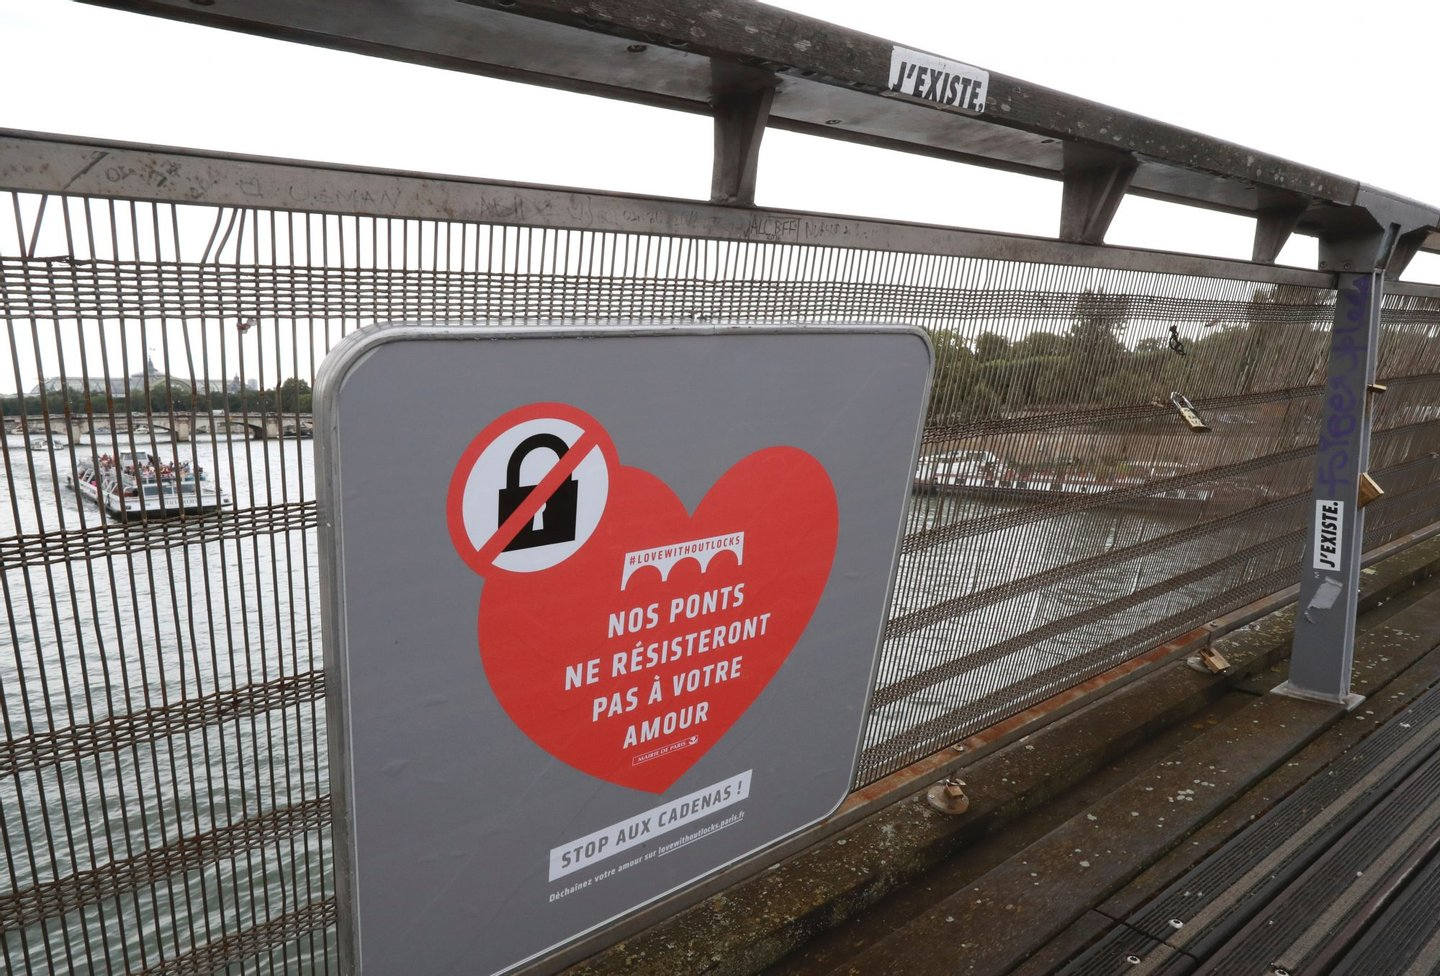 """A placard reading """"our bridges won't resist your love"""" is seen on the footbridge of Leopold-Sedar-Senghor in Paris, on August 4, 2016. Love may know no bounds, but Paris intends to instill some: authorities are going to take a tougher line with swooning couples attaching """"love-locks"""" to city bridges as a sign of their undying devotion. In June last year authorities removed hundreds of thousands of such padlocks from the city bridges, notably the Pont des Arts which had a section collapse under the weight of the locks. / AFP / JACQUES DEMARTHON (Photo credit should read JACQUES DEMARTHON/AFP/Getty Images)"""